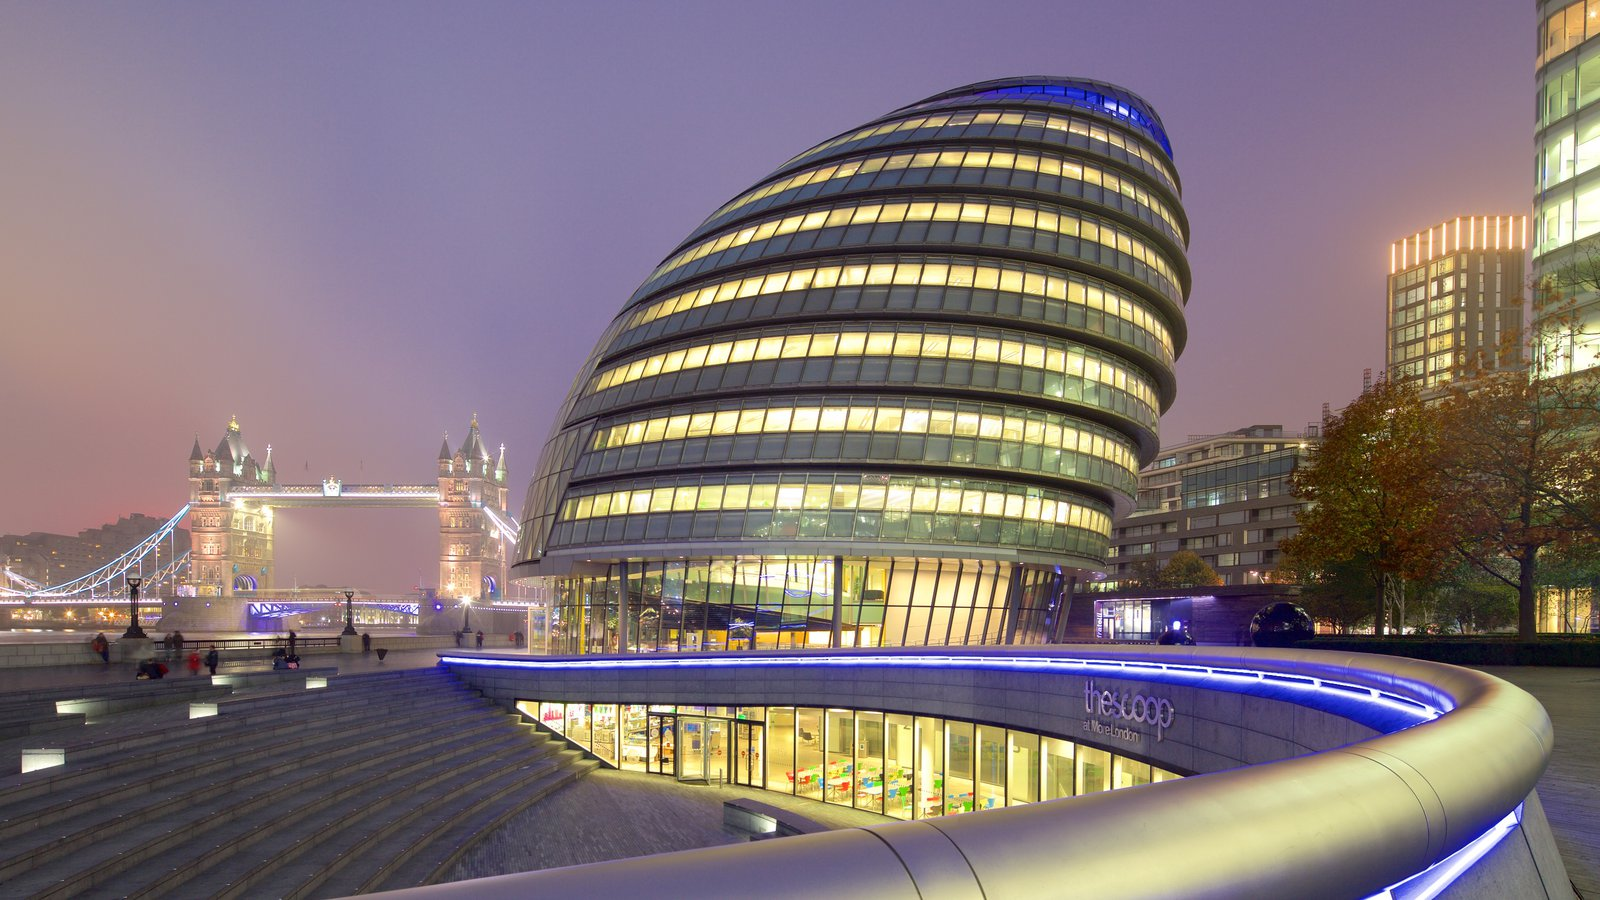 London City Hall Pictures: View Photos & Images of London City Hall